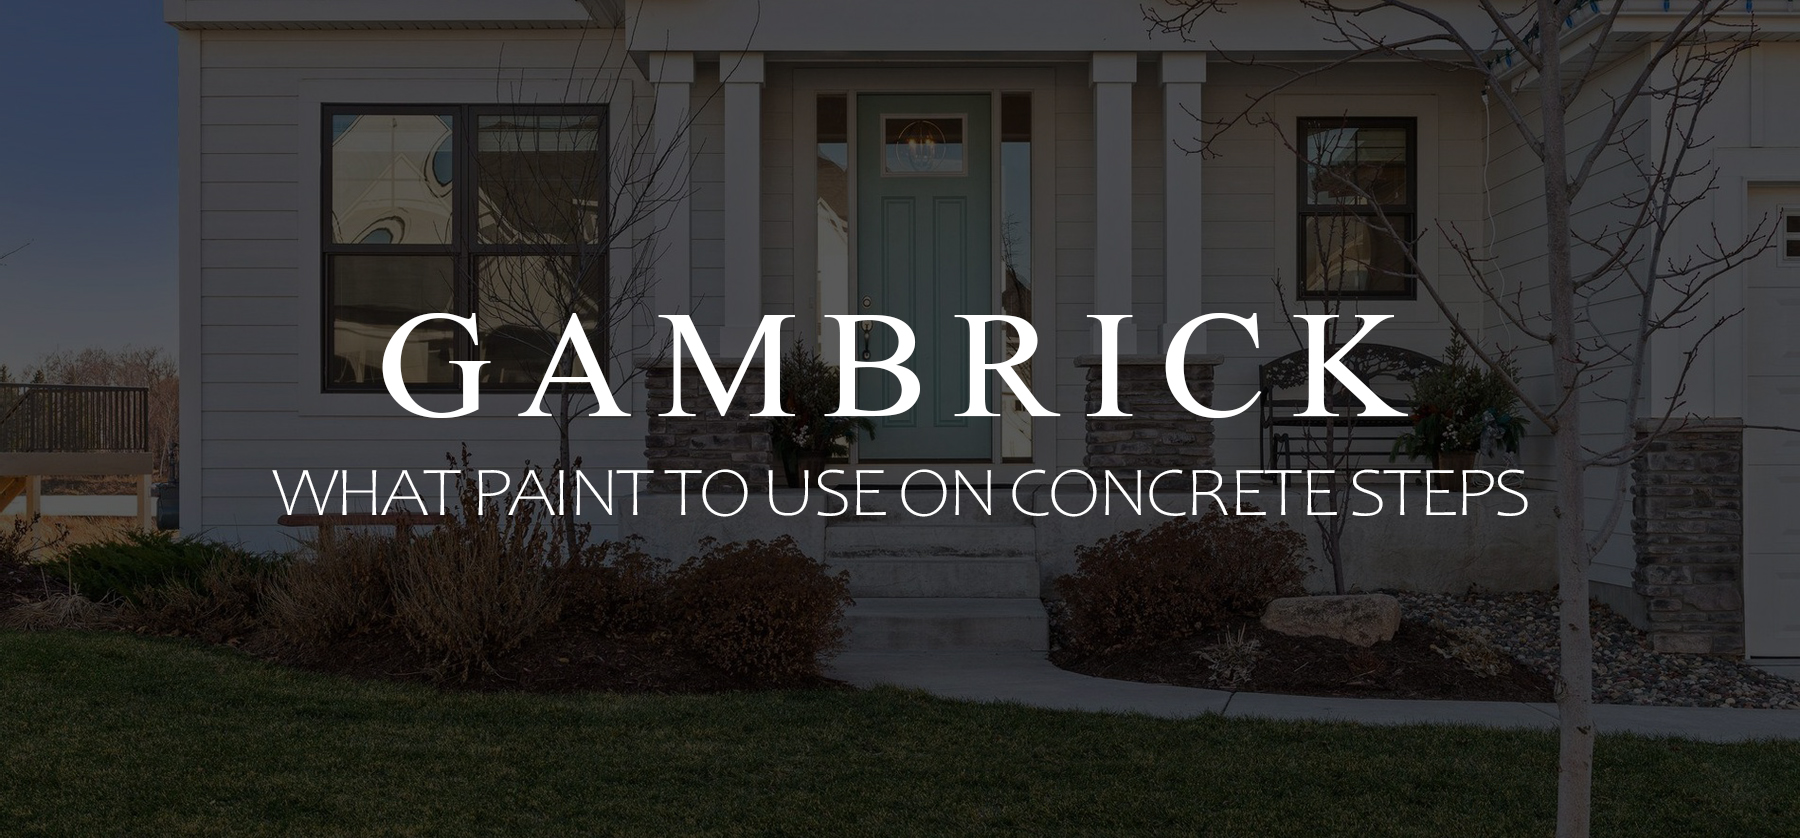 what paint to use on concrete steps banner pic